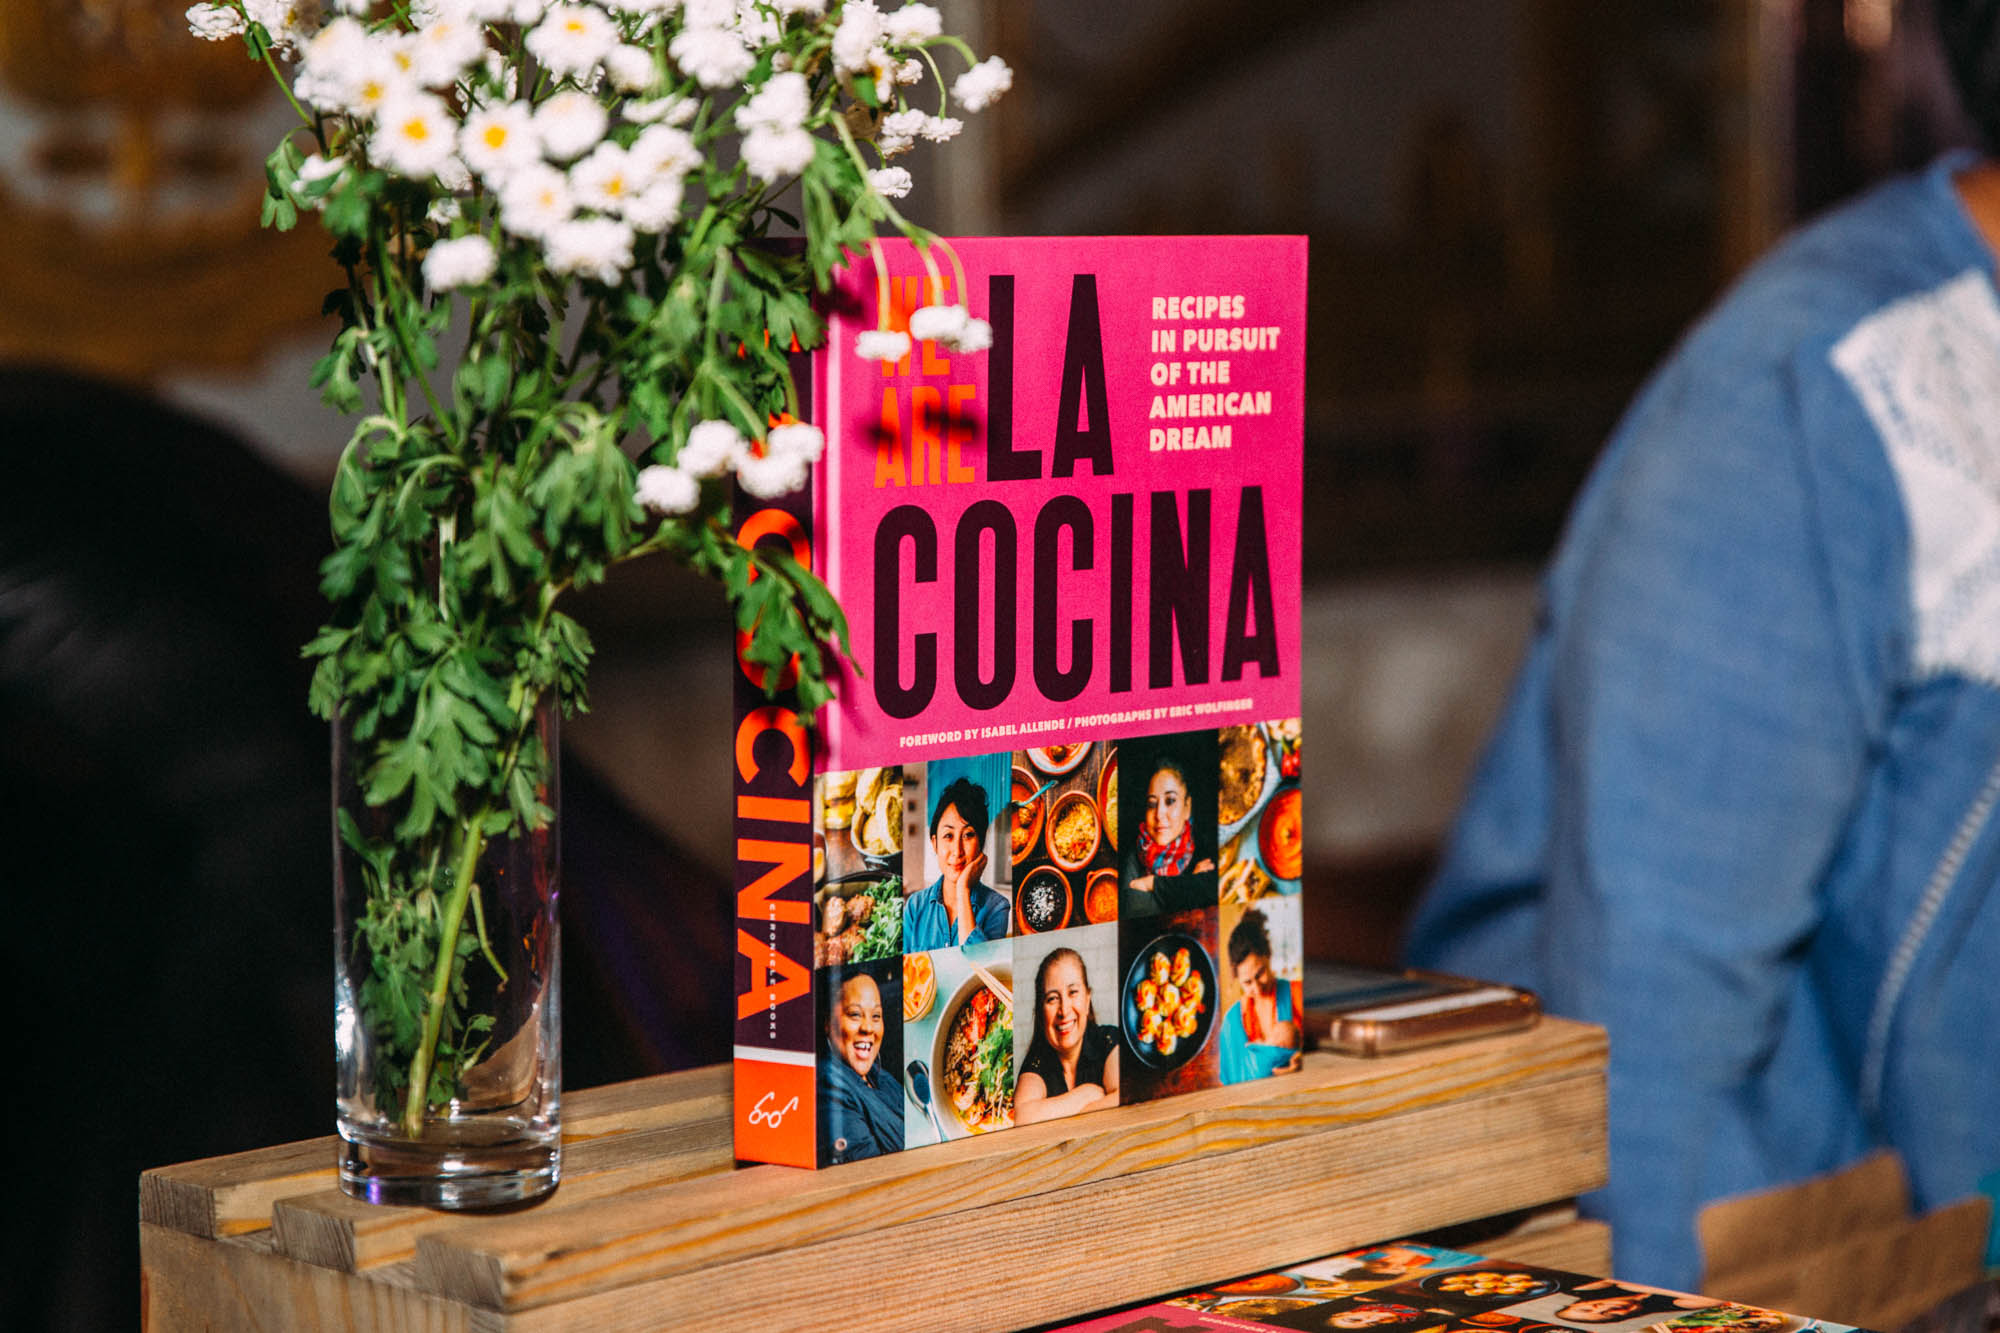 La Cocina Voices From The Kitchen Event